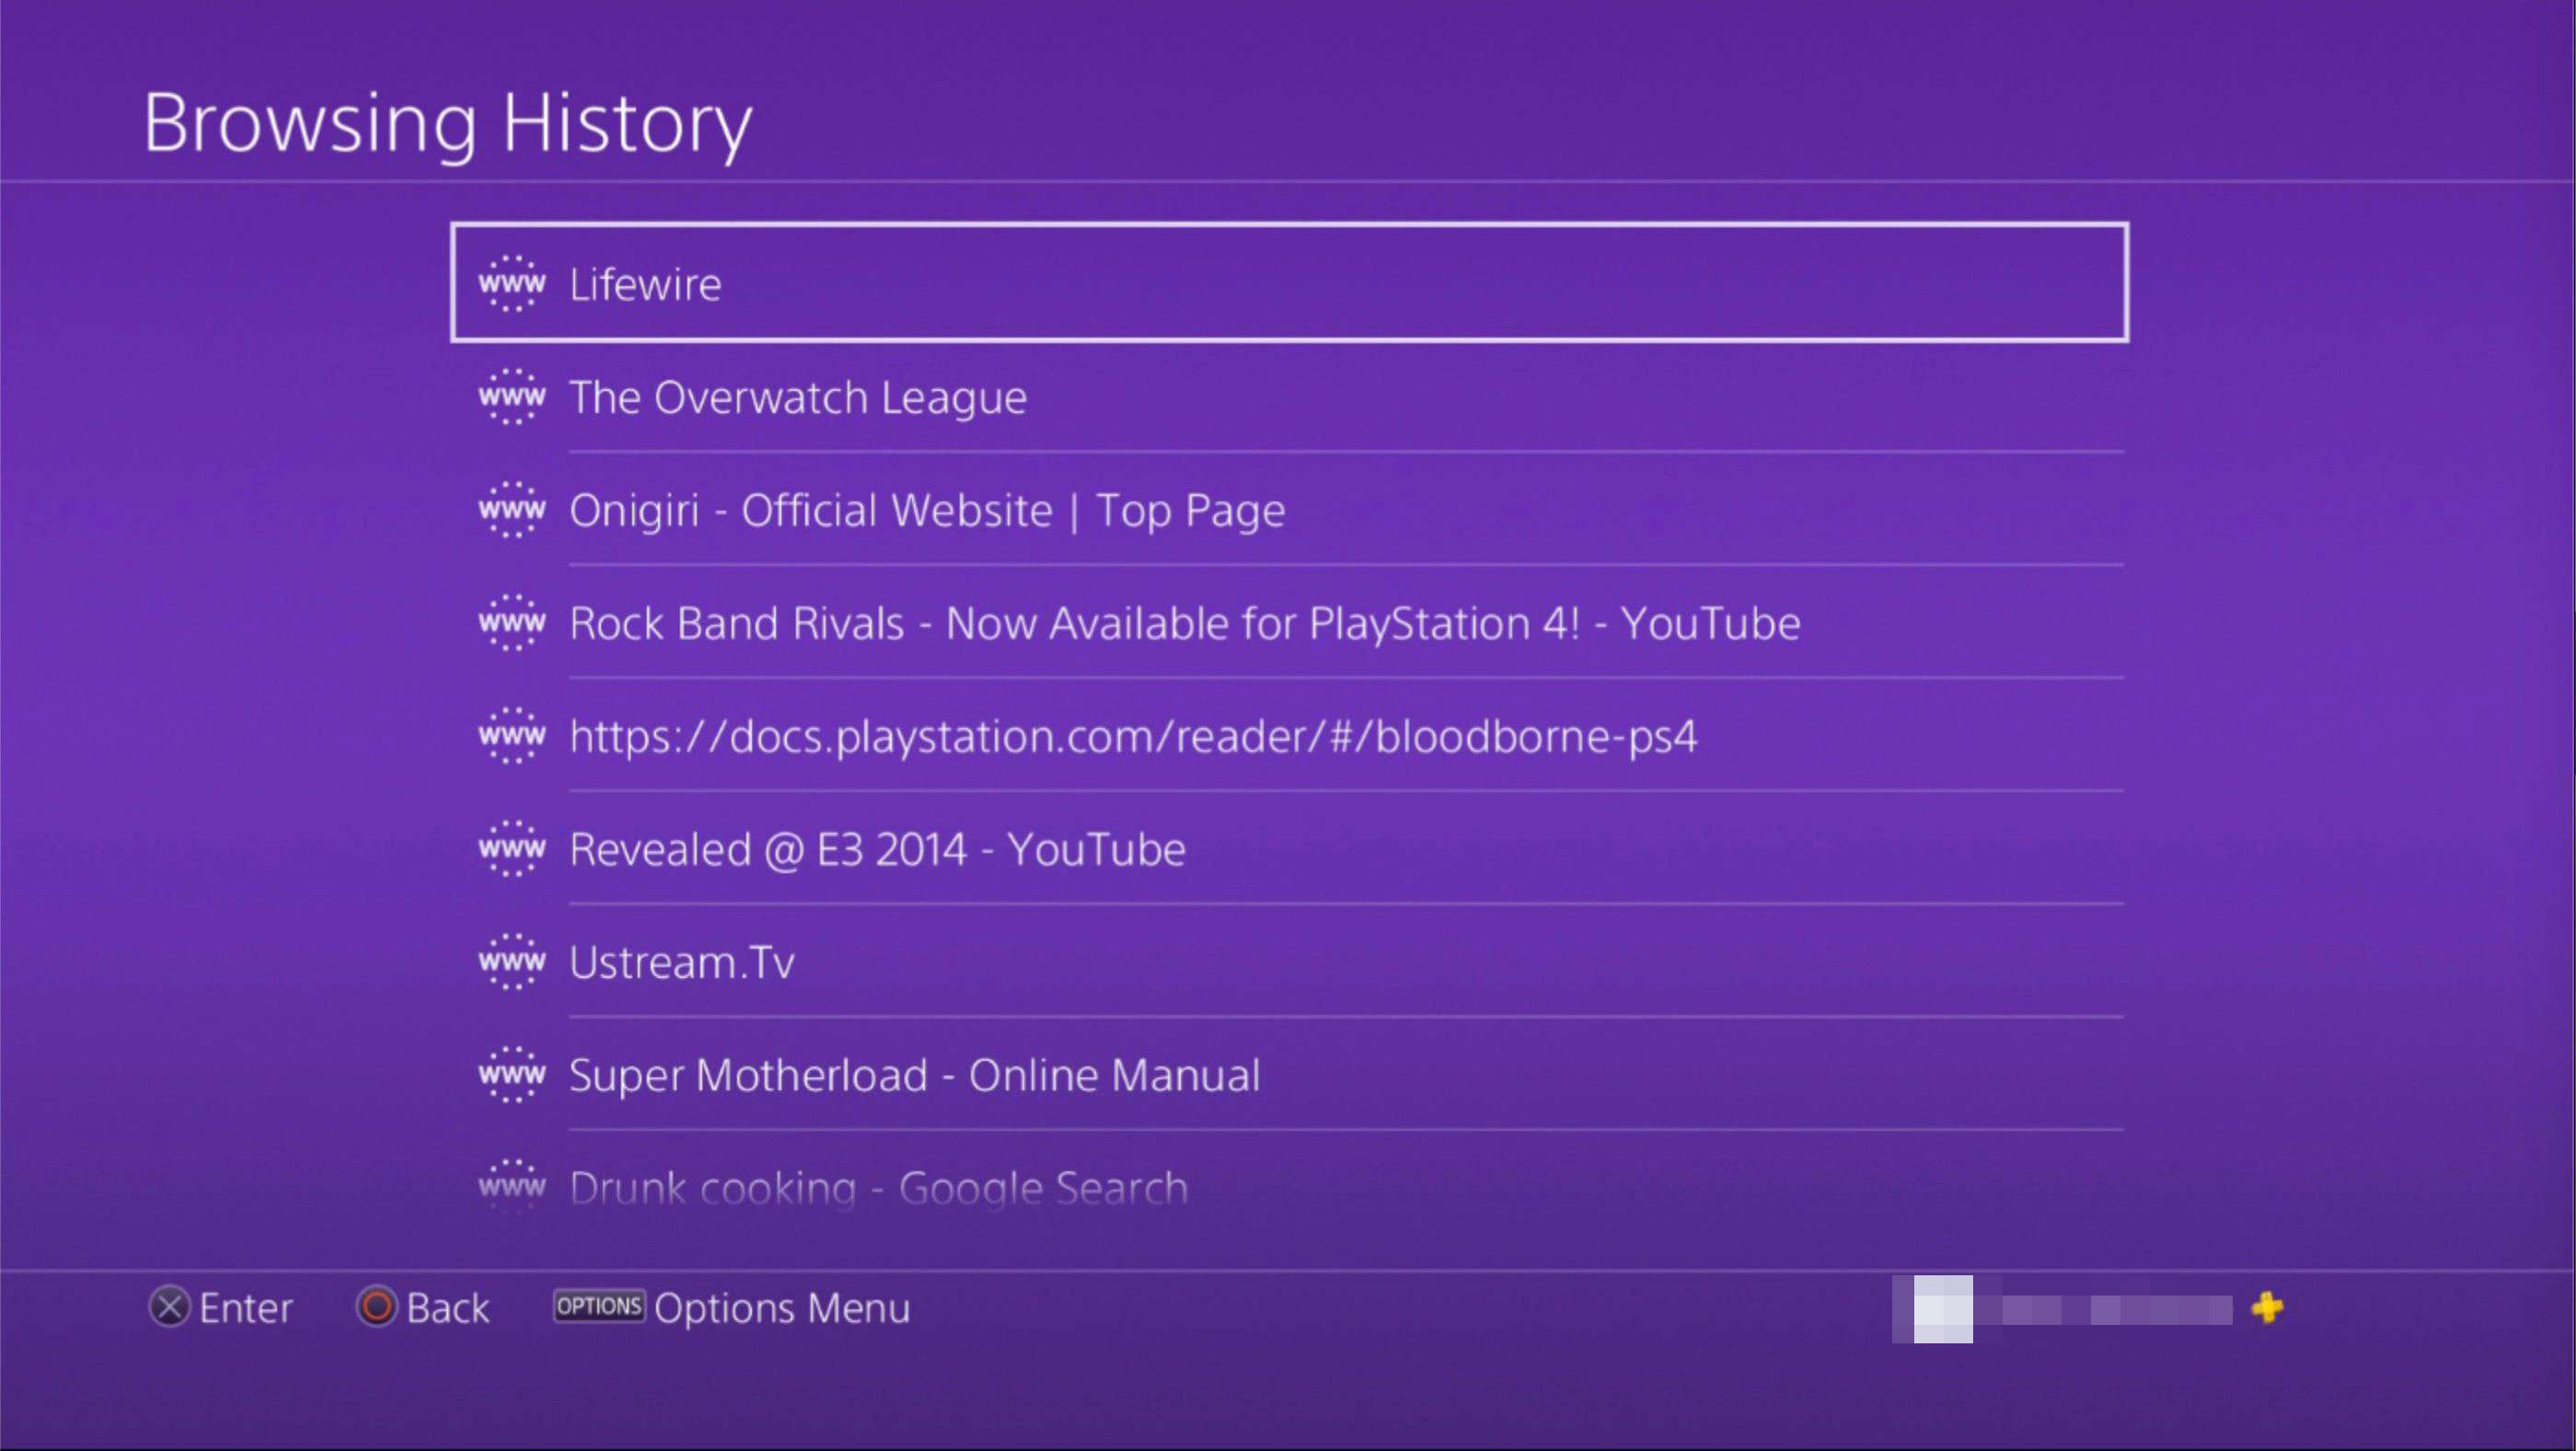 Browsing History on PS4